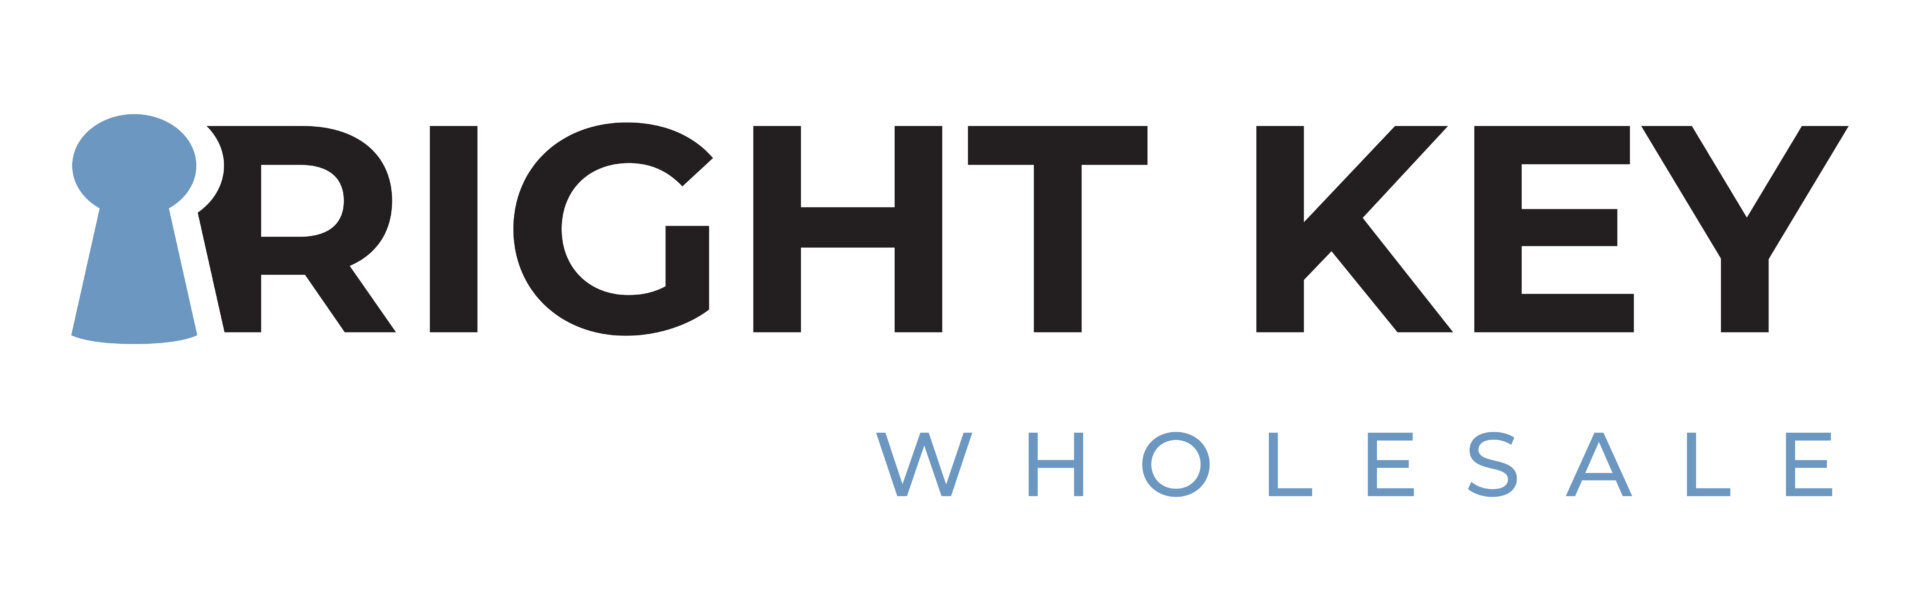 Right Key Wholesale logo